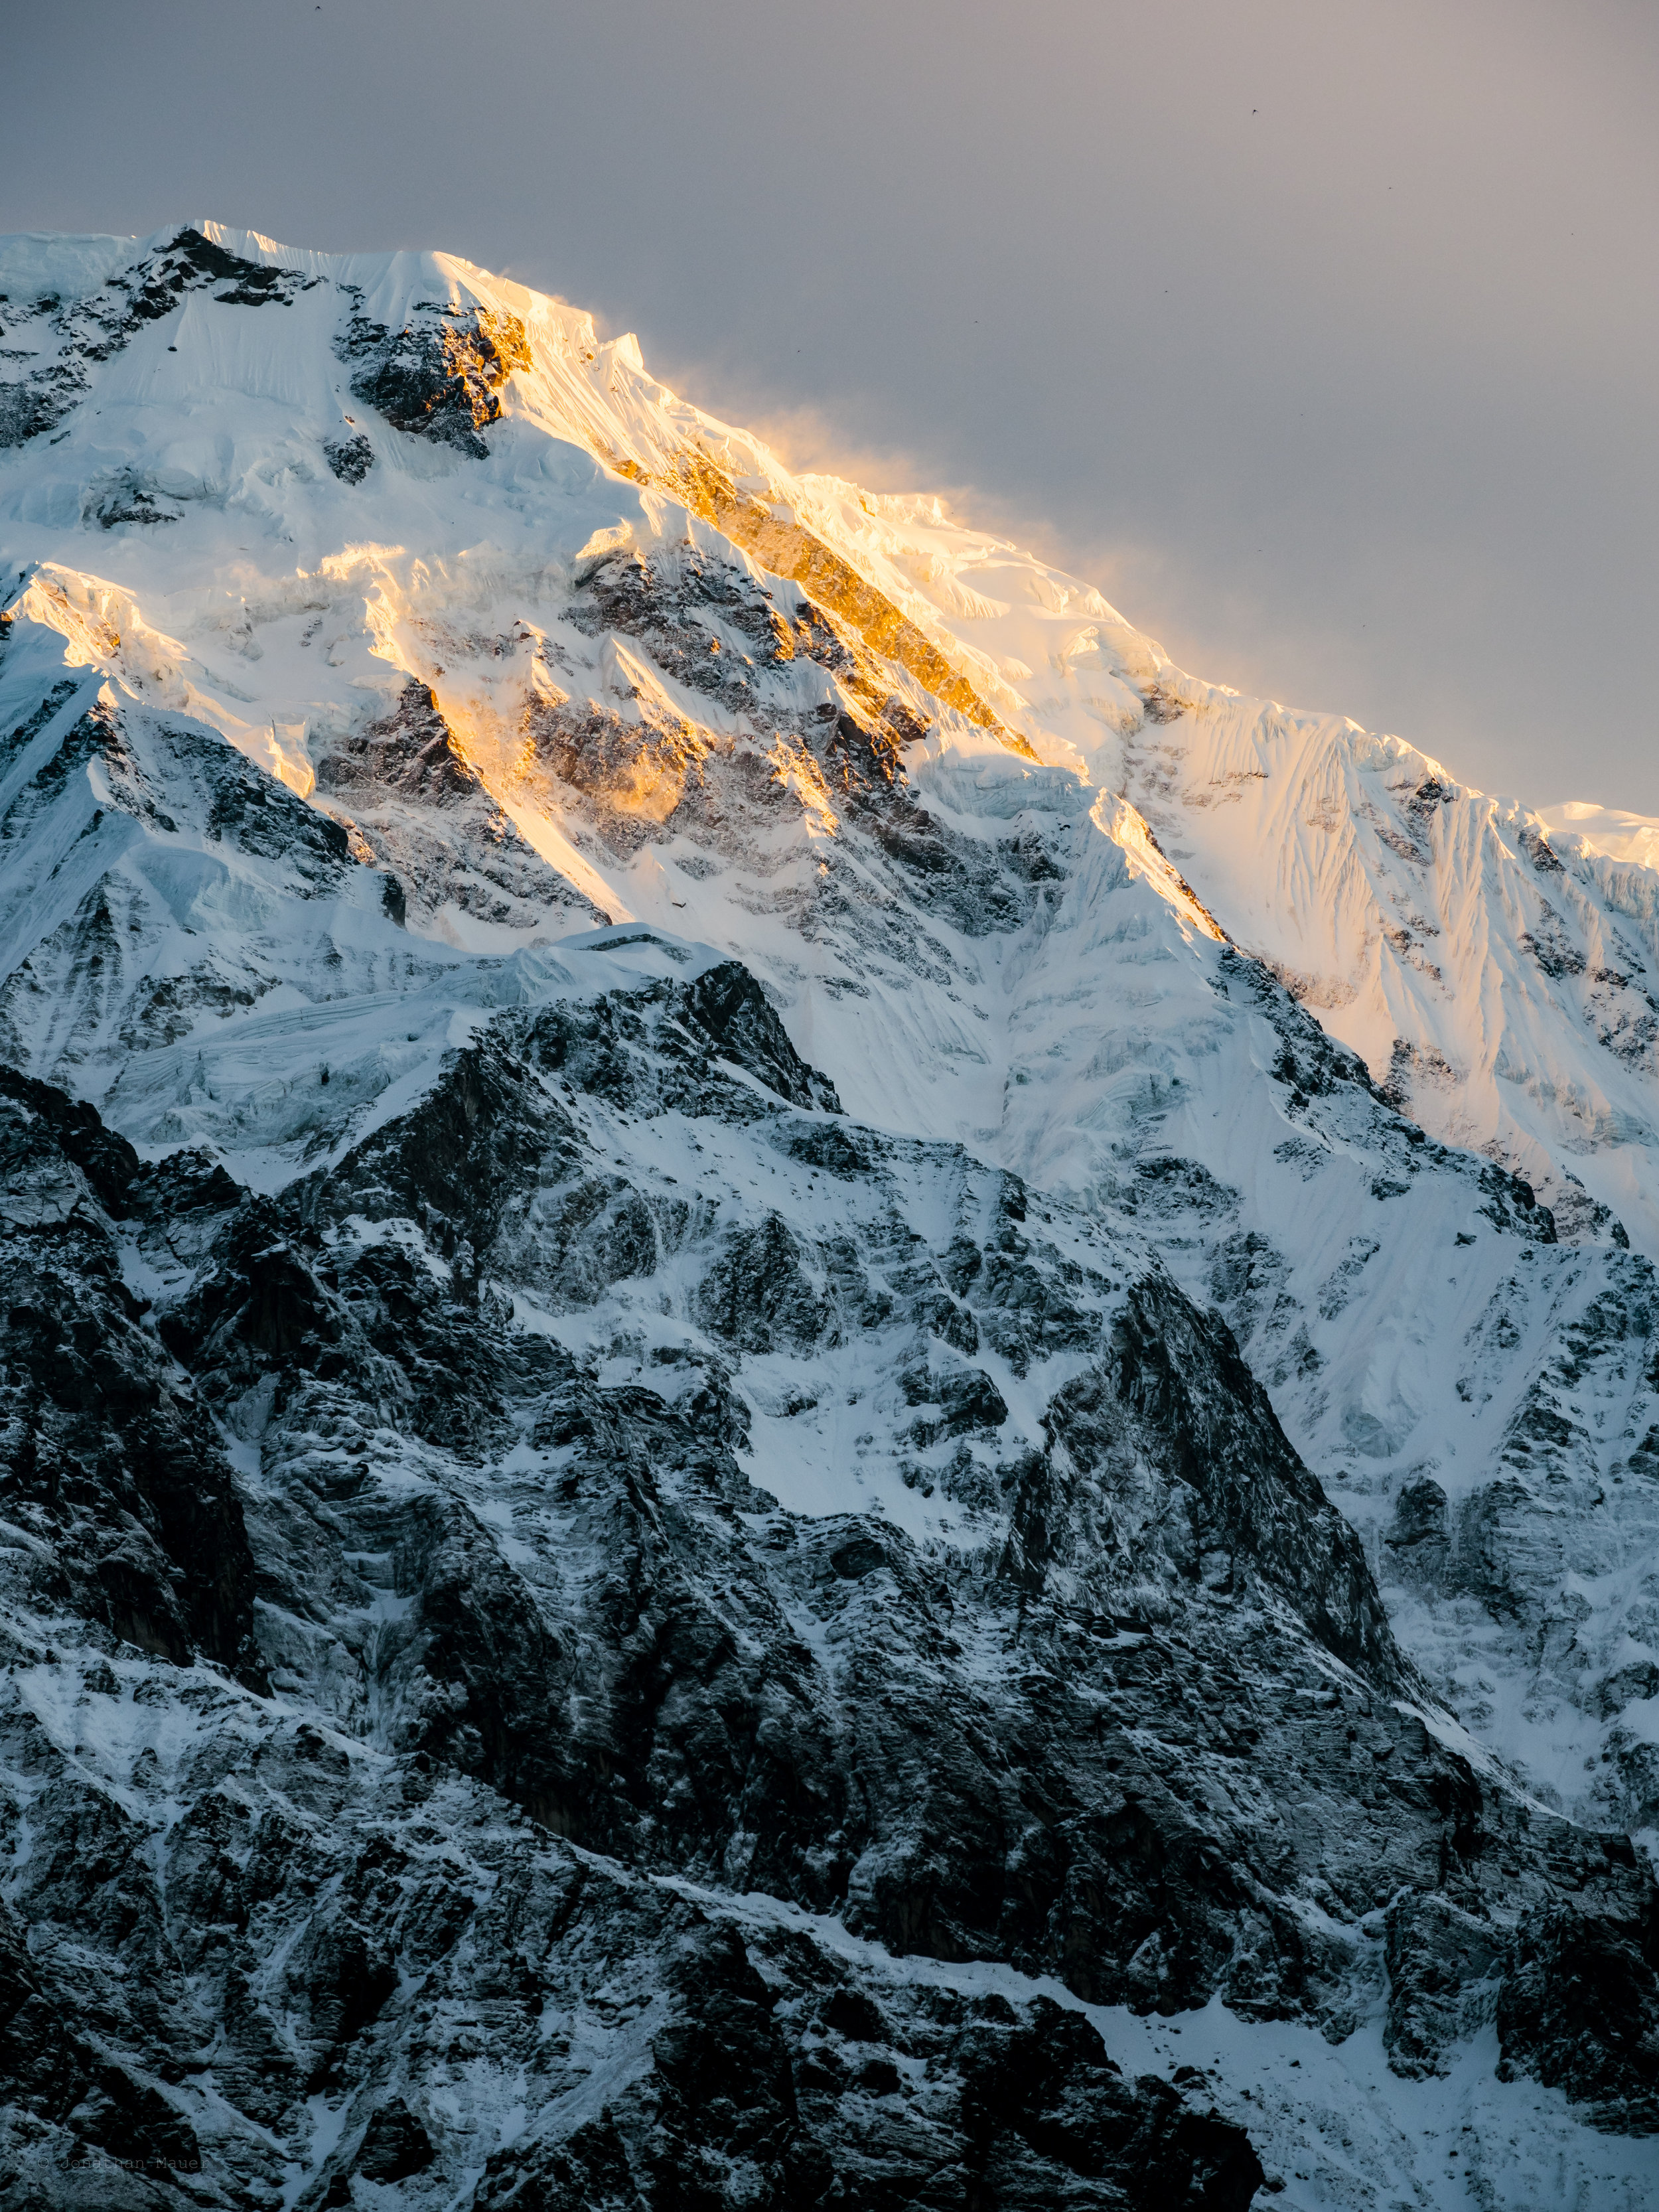 The summit of Annapurna South at sunrise.